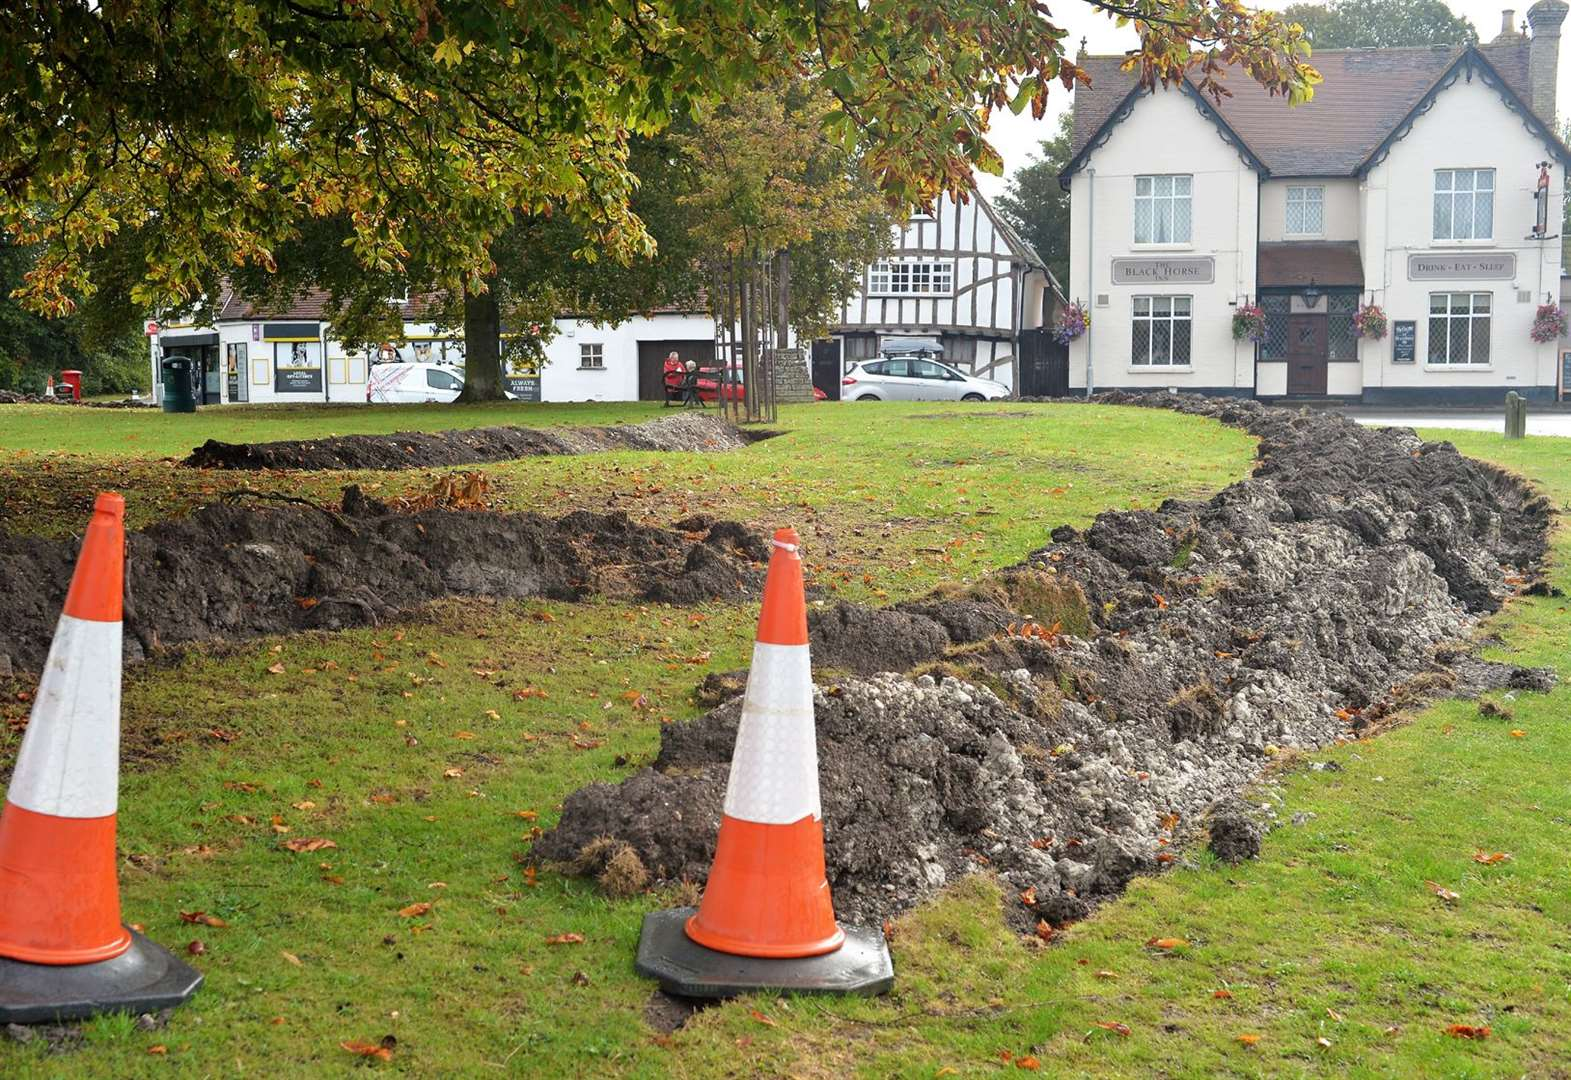 Swaffham Bulbeck digs trenches in village green to stop travellers